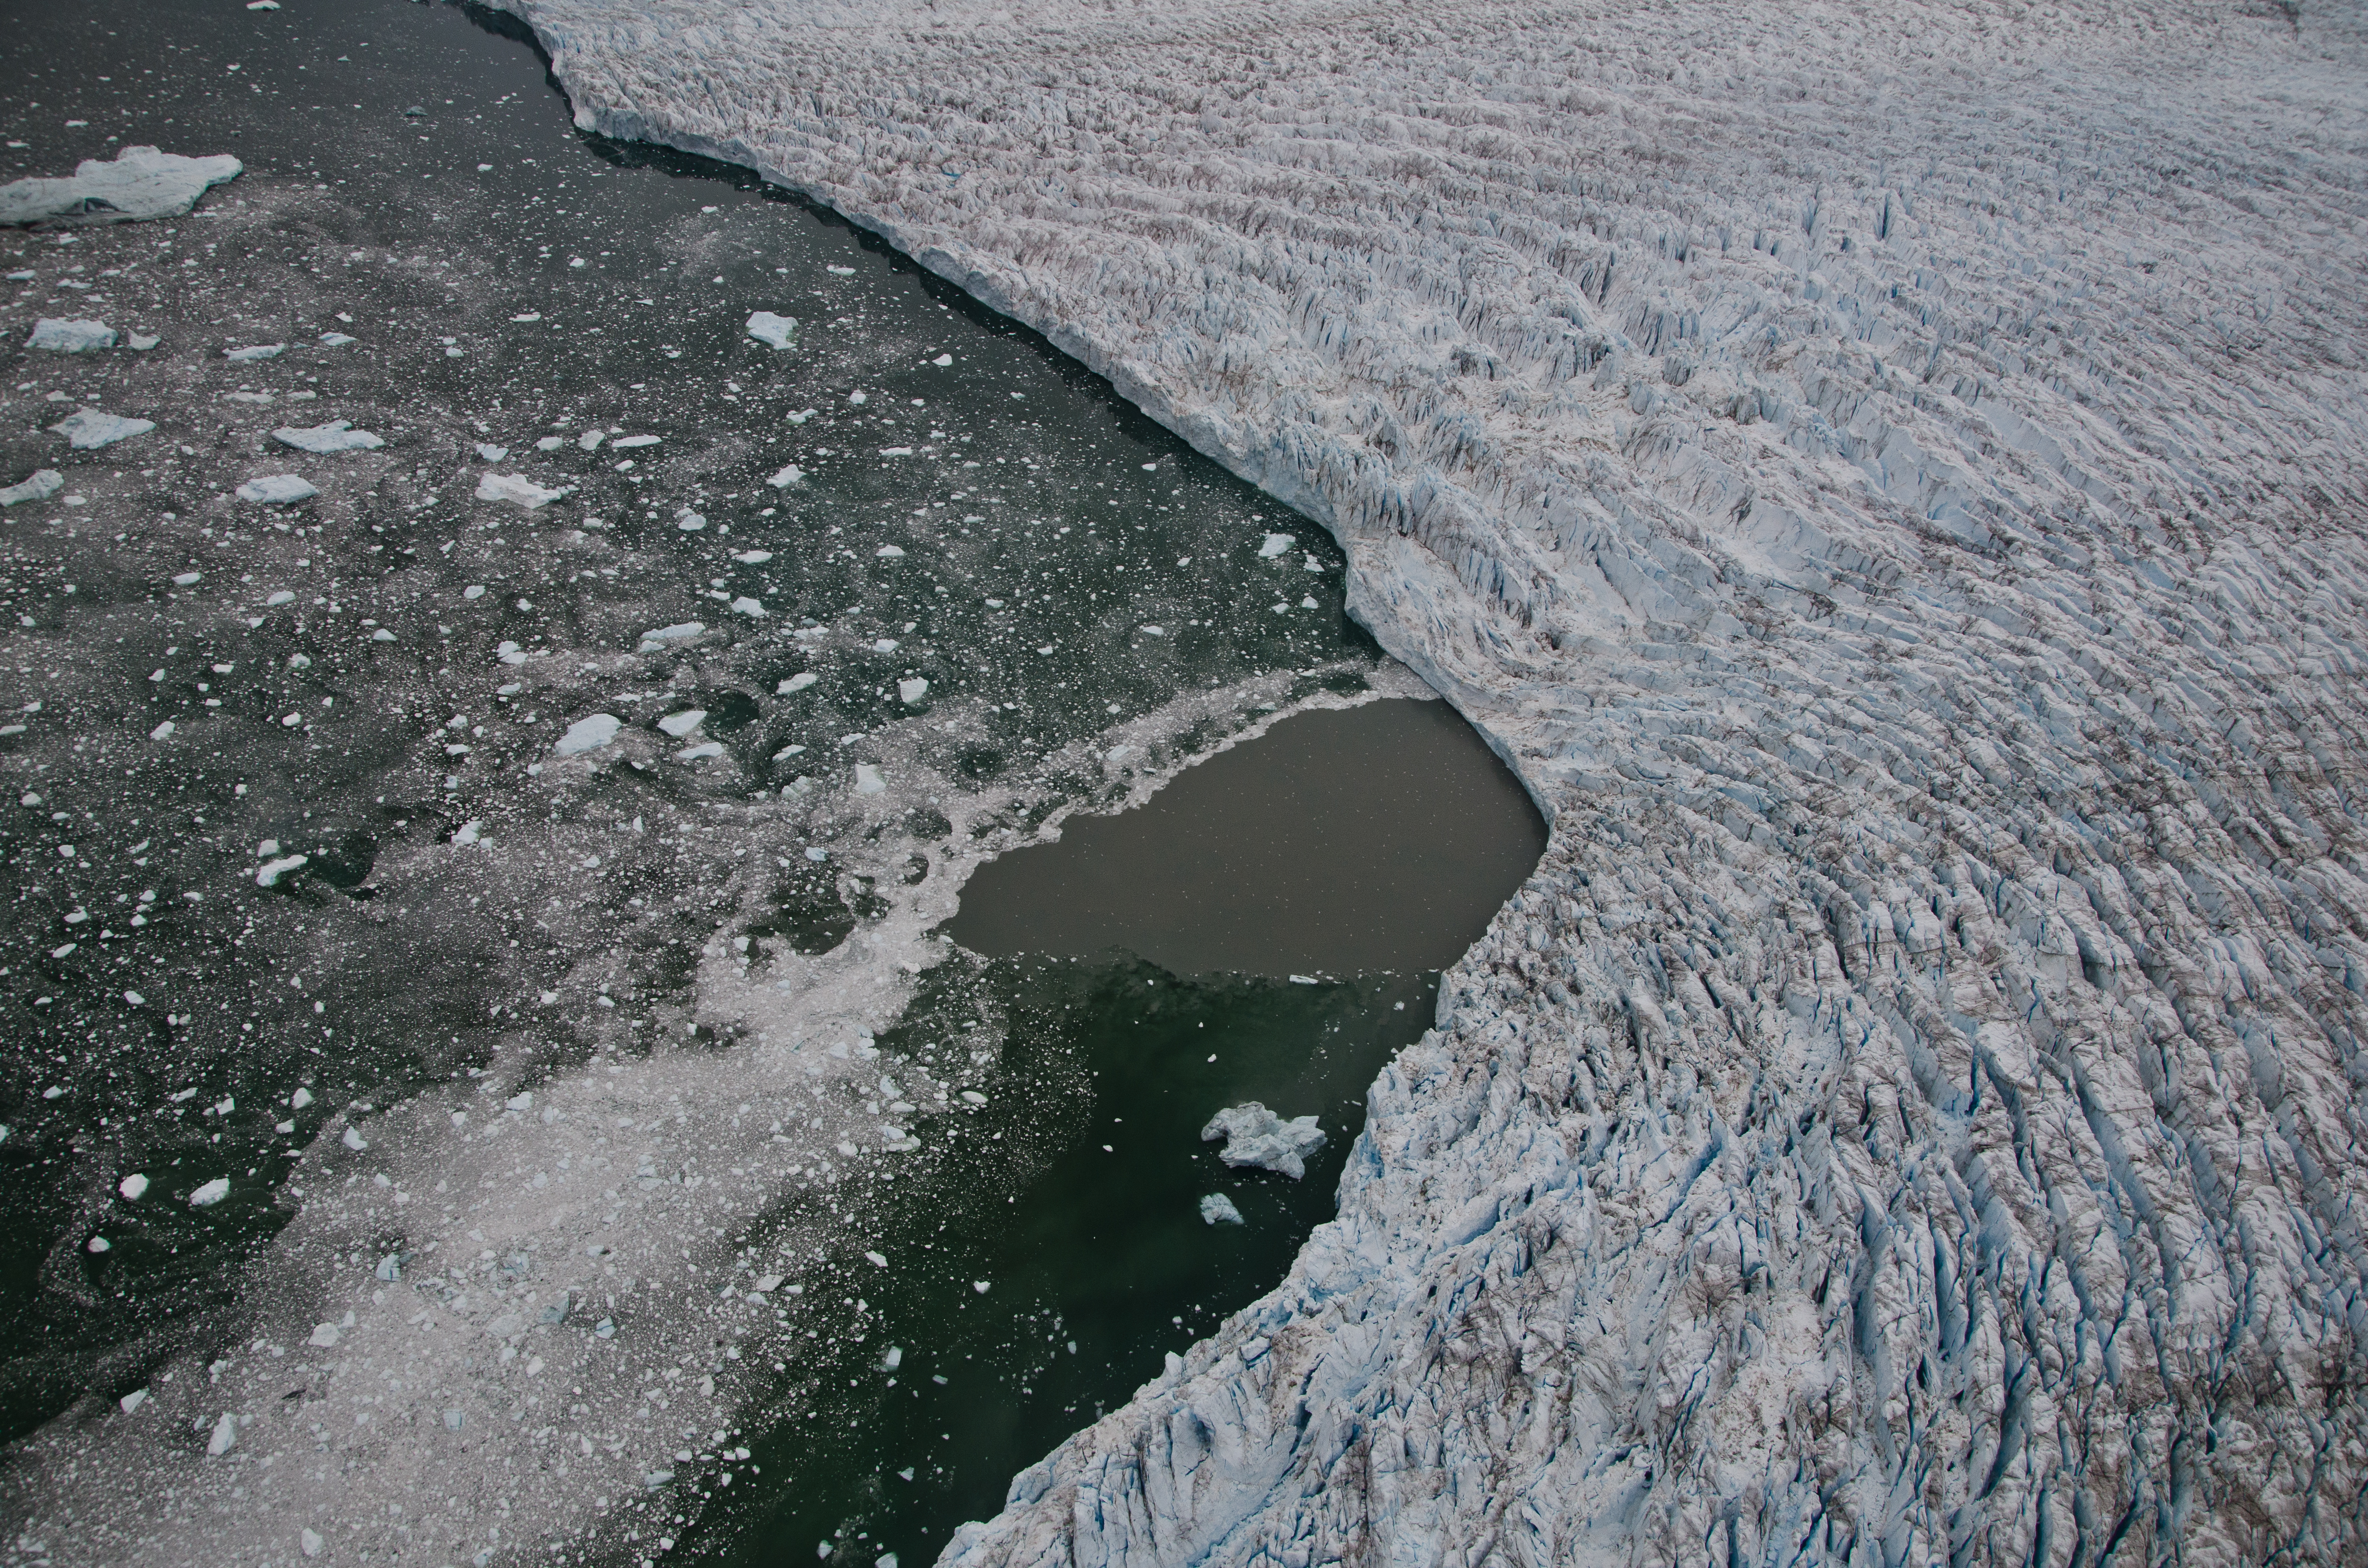 Greenland's ice sheet is melting at its fastest rate in centuries